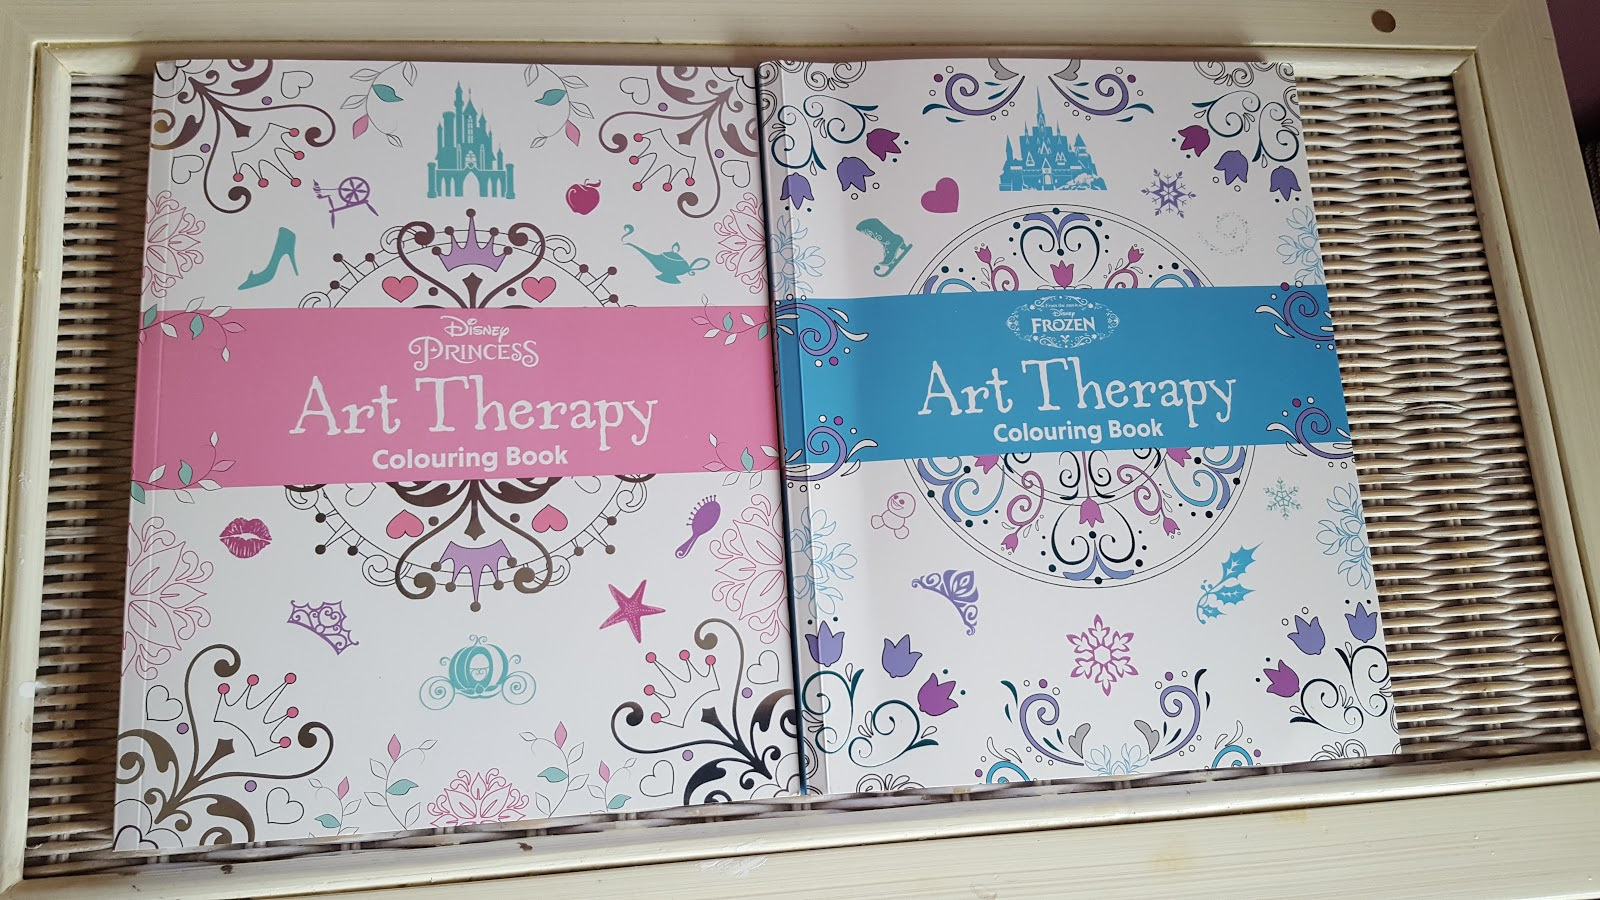 Disney princess art therapy colouring book - The 2 Books I Have Been Sent Combine My Love For Adult Colouring And My Love Of Disney The Dinsey Princess Art Therapy Book And The Frozen Art Therapy Book